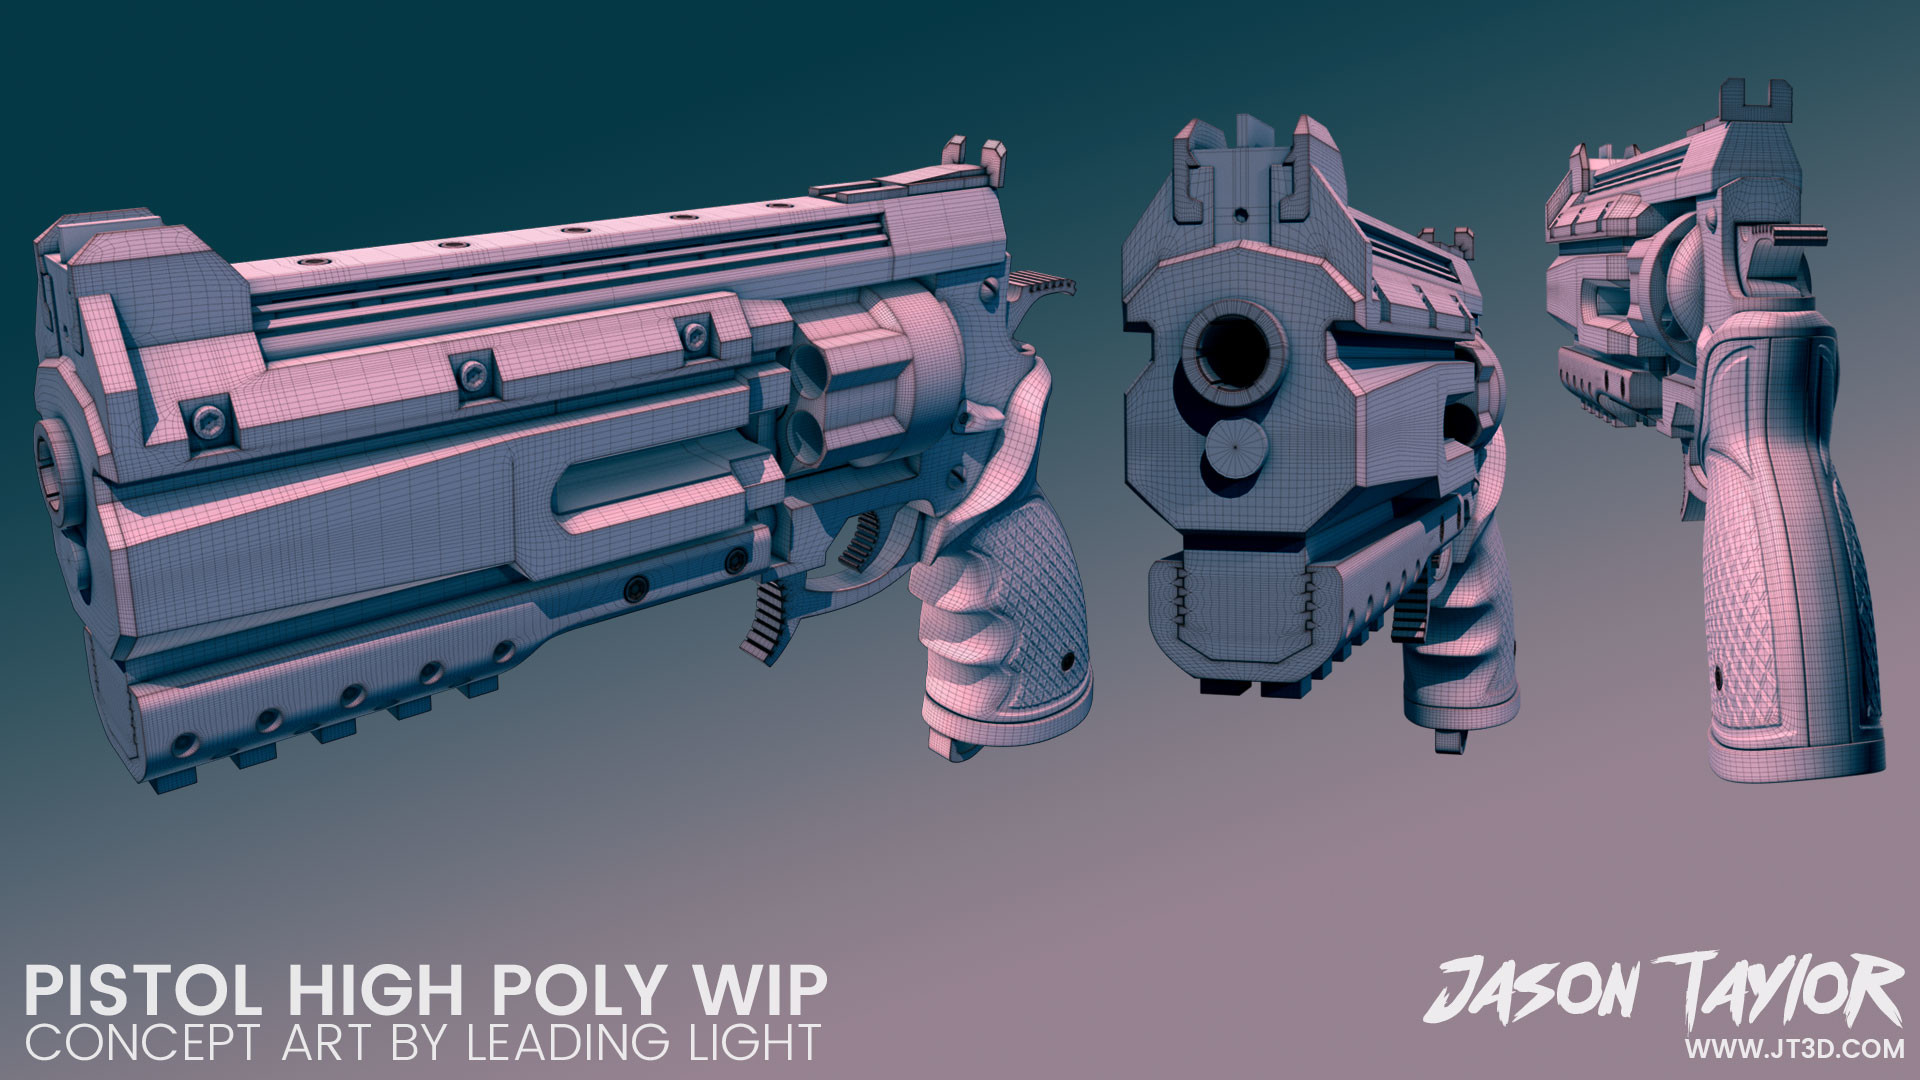 High poly work in progress.  Concept art by Leading Light.